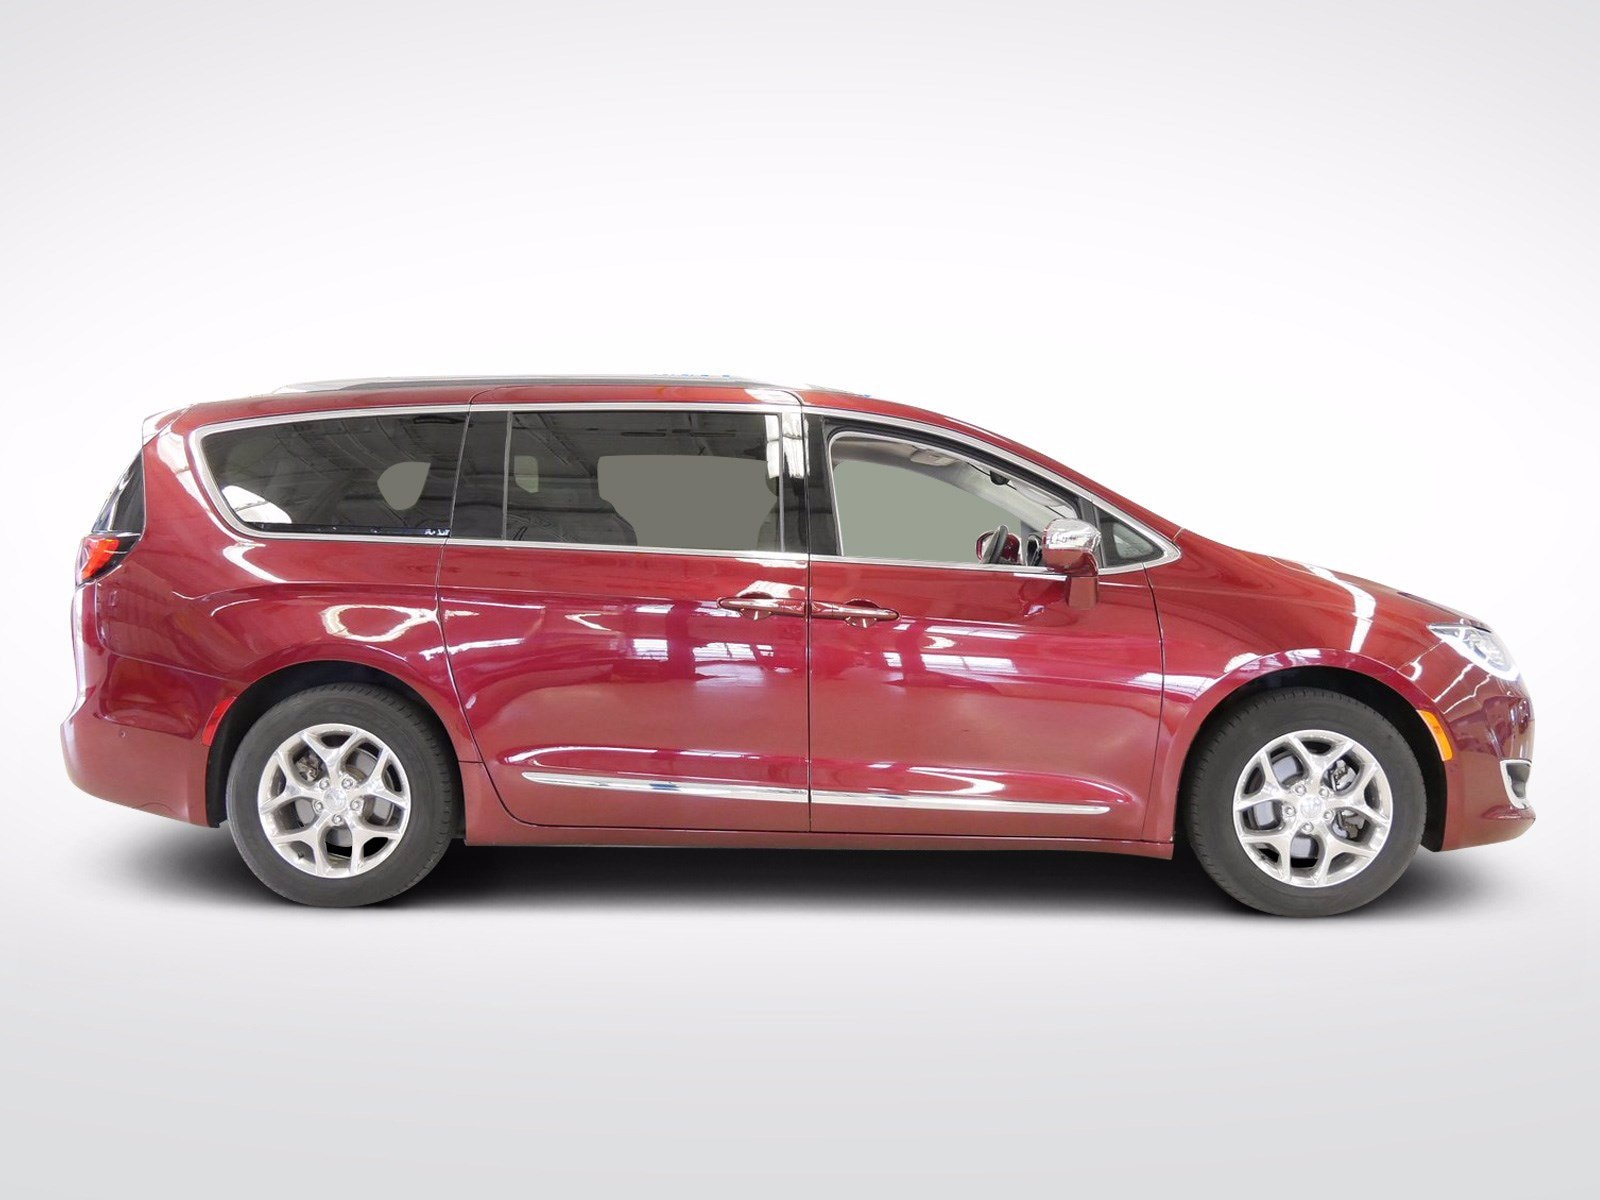 Used 2017 Chrysler Pacifica Limited with VIN 2C4RC1GG3HR517981 for sale in Willmar, Minnesota